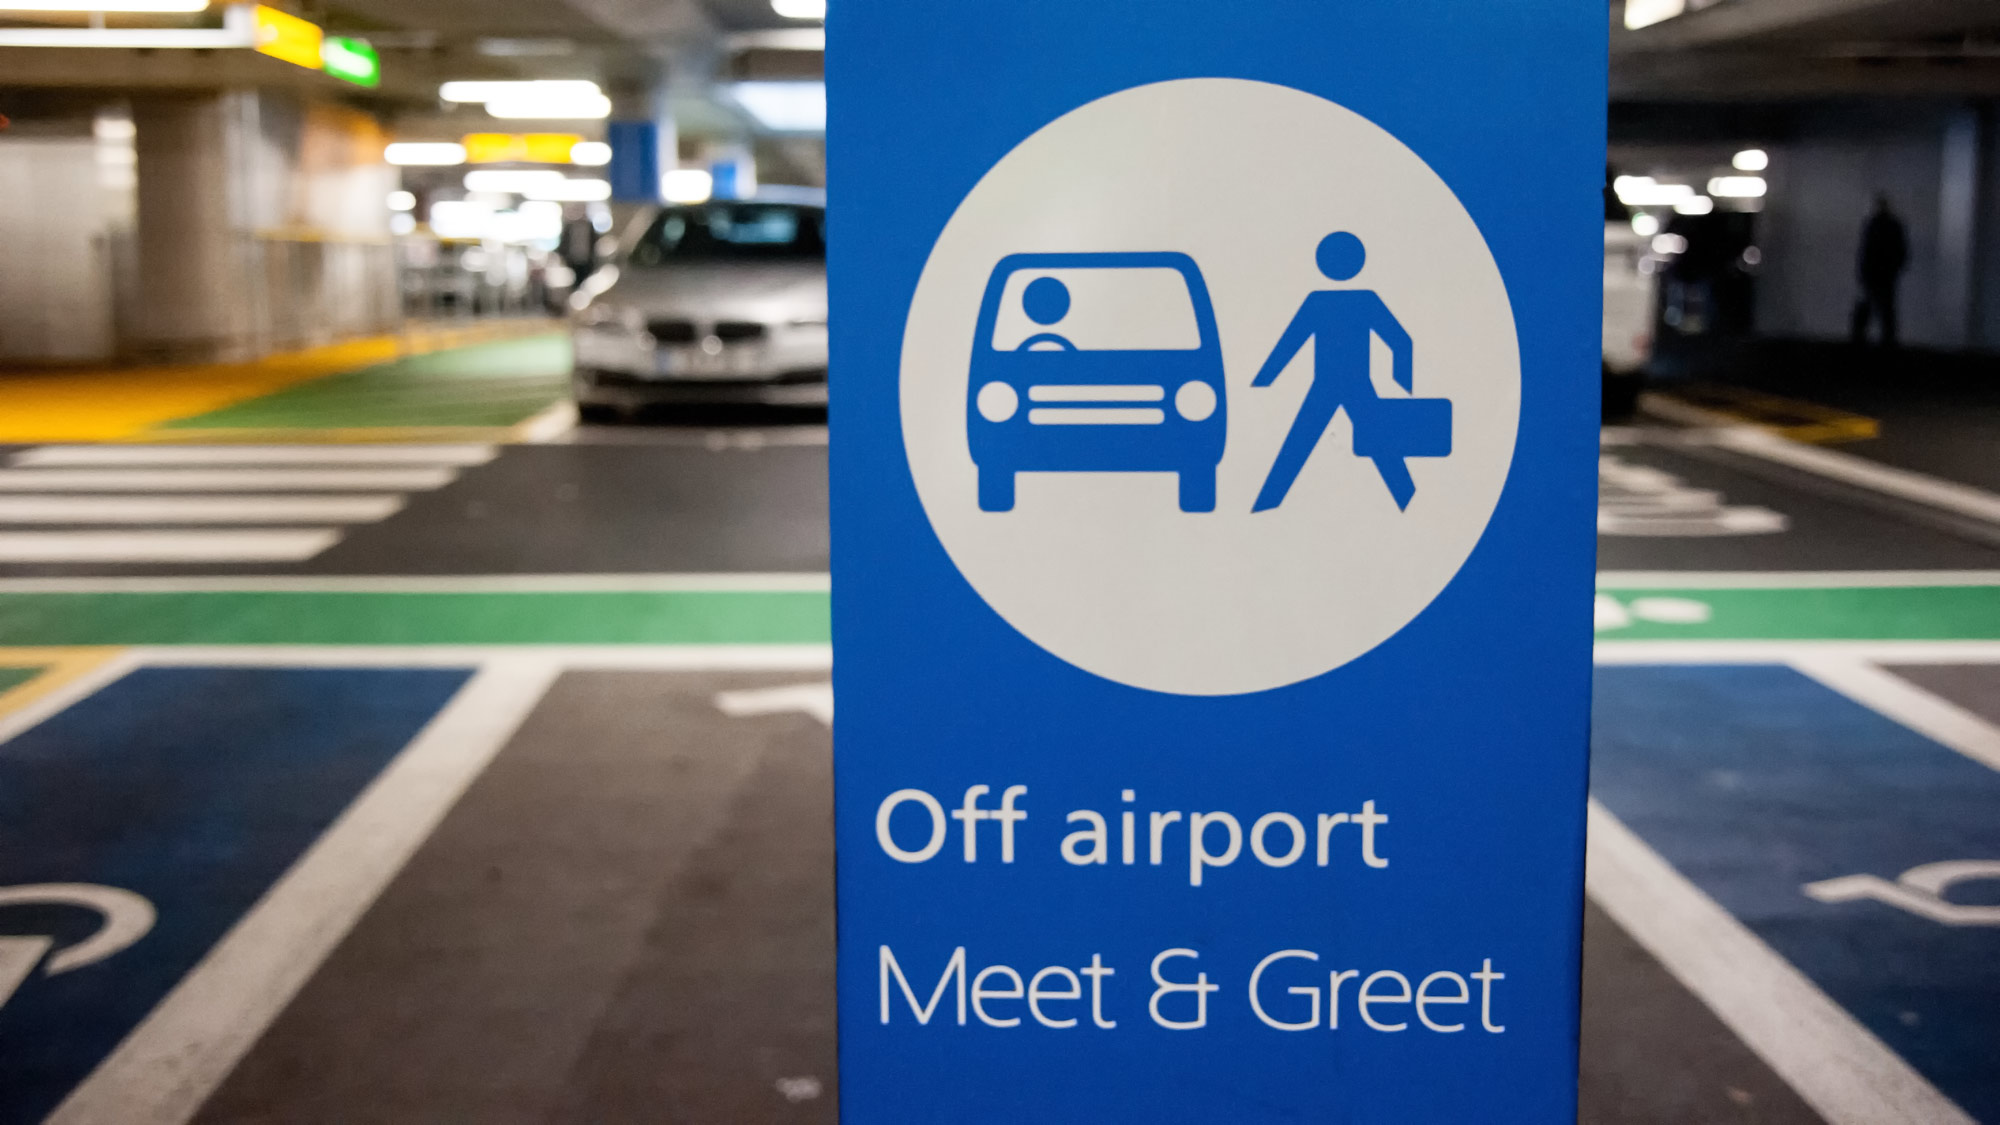 Heathrow meet and greet heathrow airport parking i love clear signposted area kristyandbryce Gallery